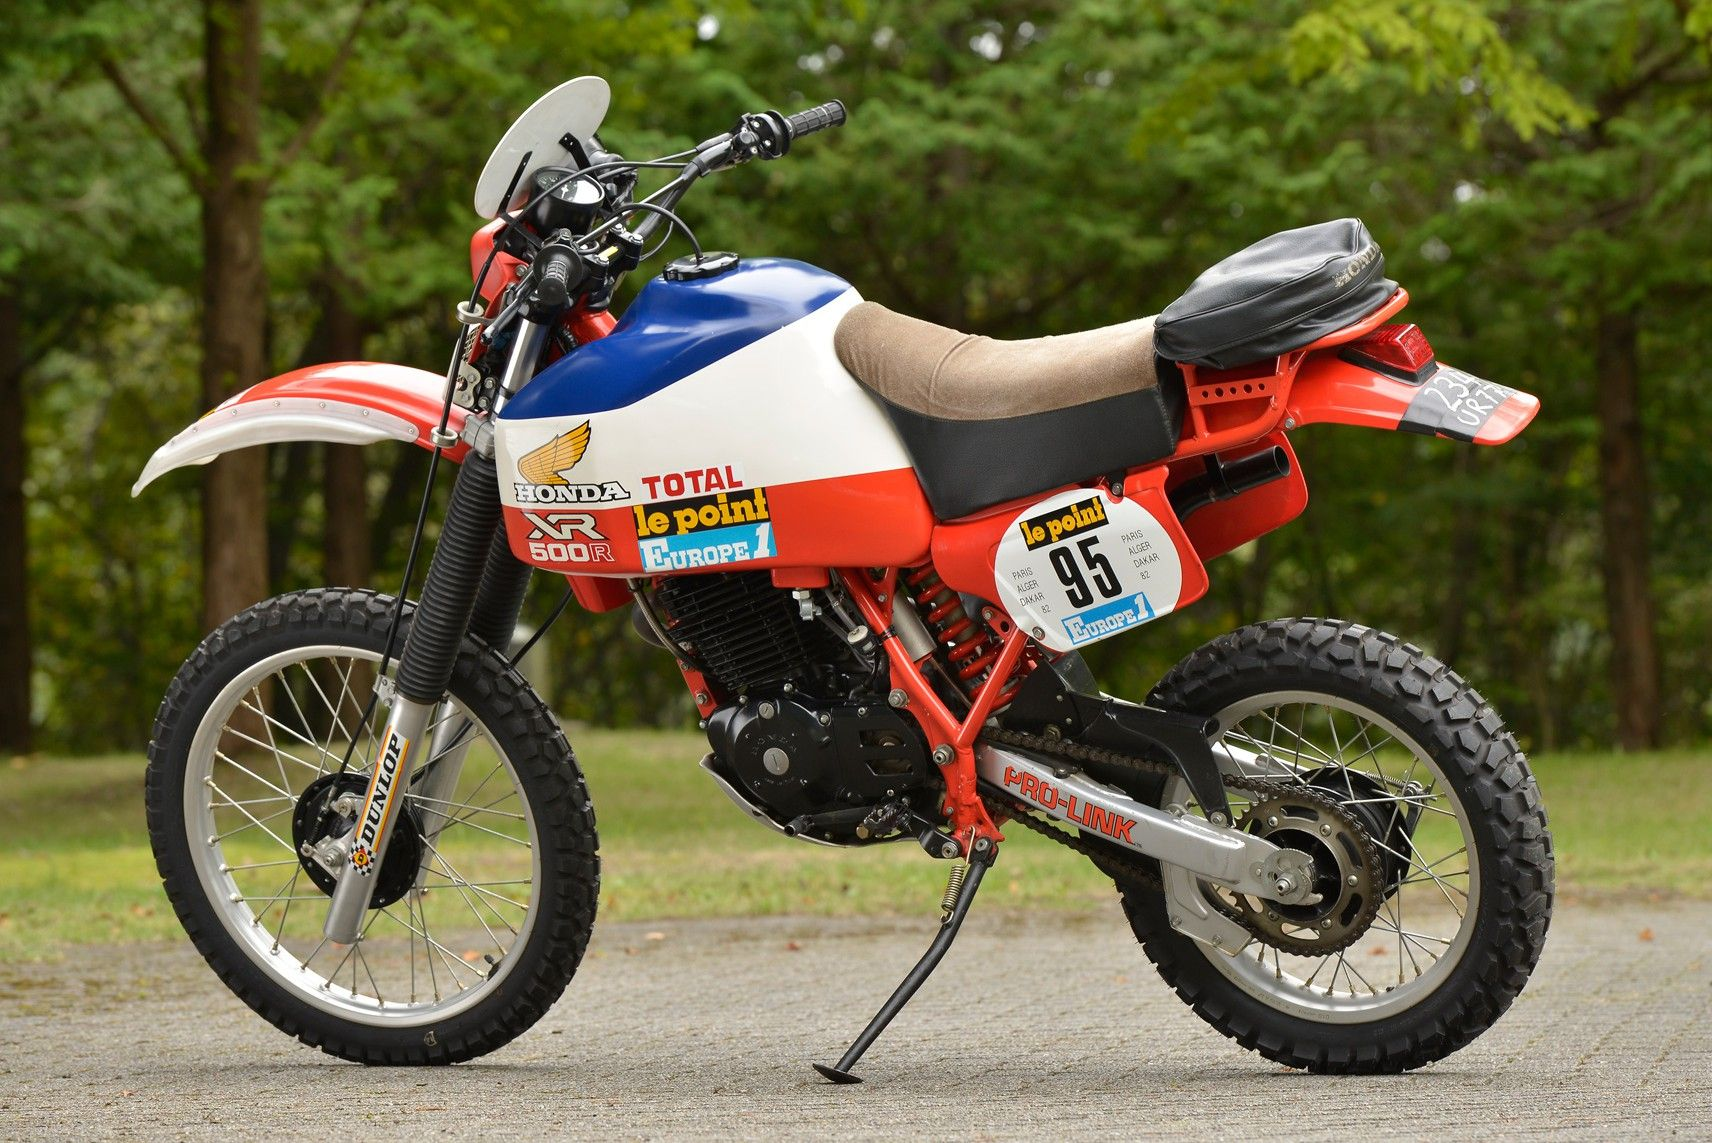 honda xl 500 r paris dakar 1982 honda thumpers honda. Black Bedroom Furniture Sets. Home Design Ideas